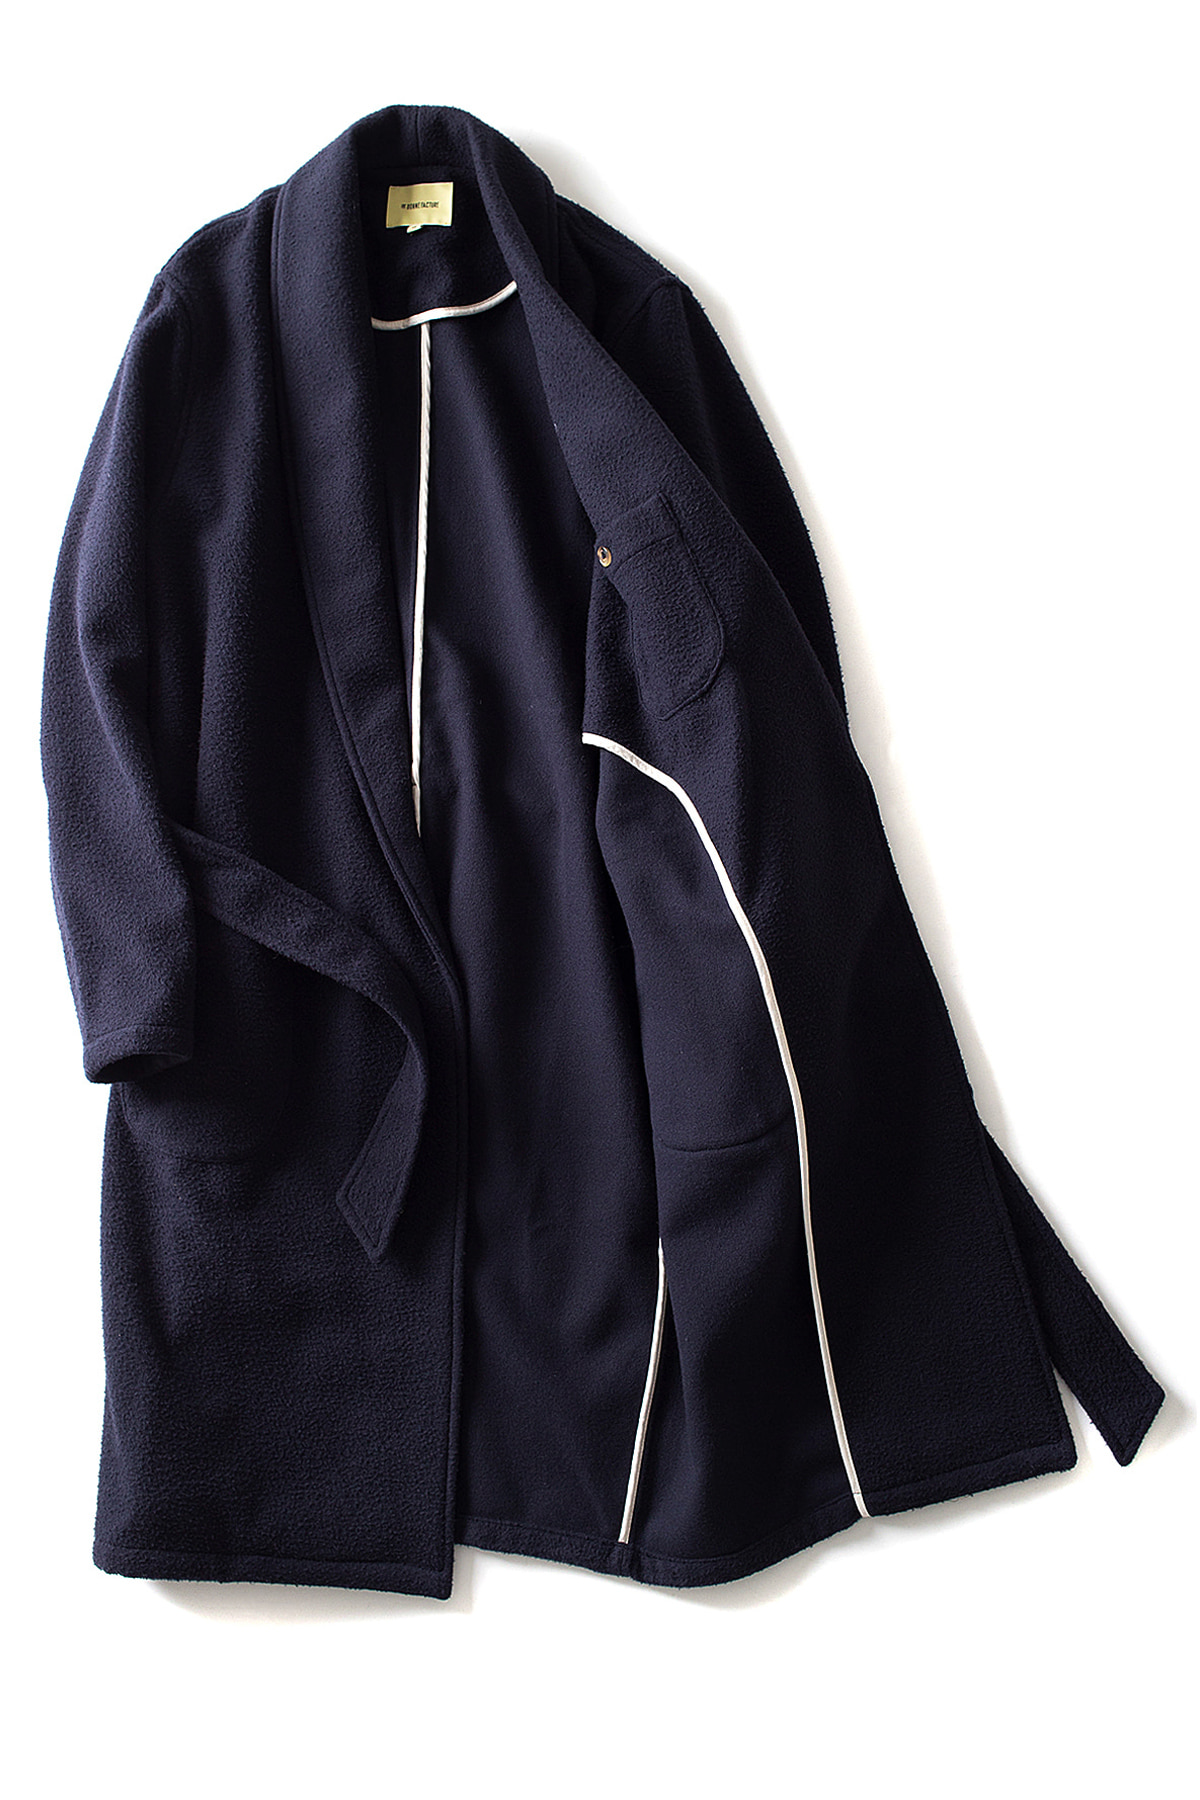 de bonne facture : Bathrobe Coat(Navy)